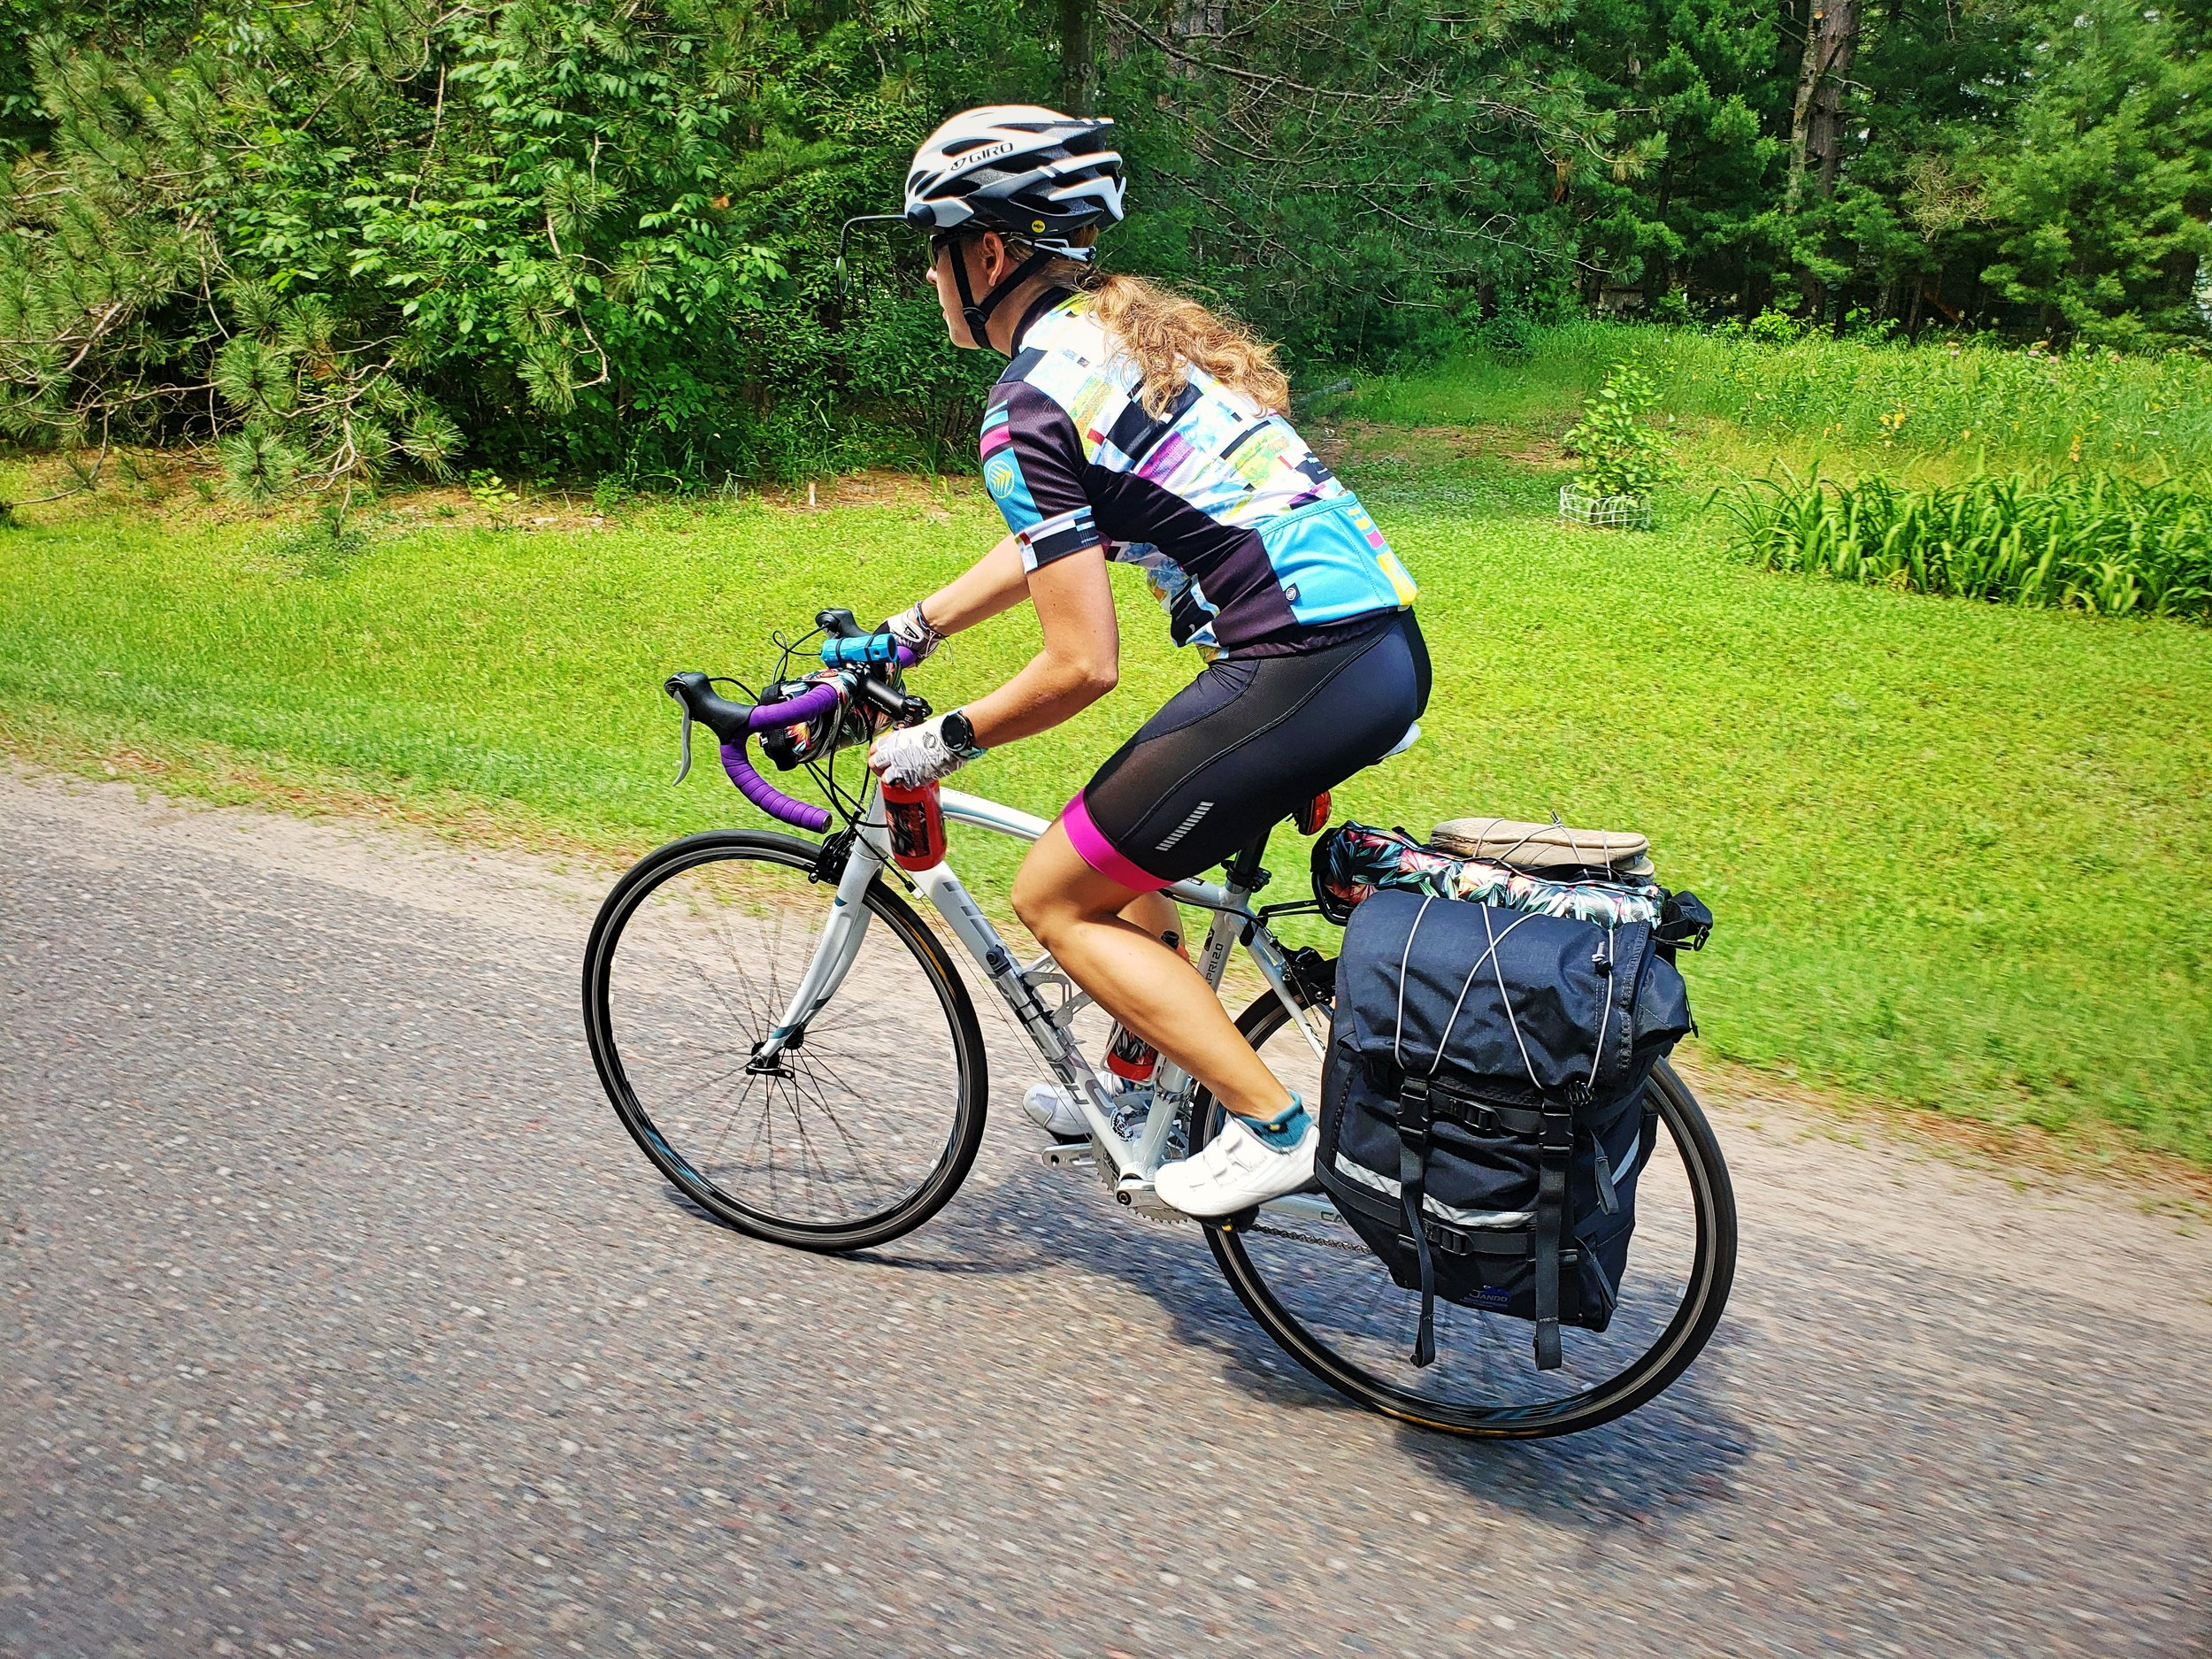 Panniers are still a good option if you are able to mount a rack to your bike. But if not, our homemade frame pack tutorial can help you design the perfect bag for your frame.